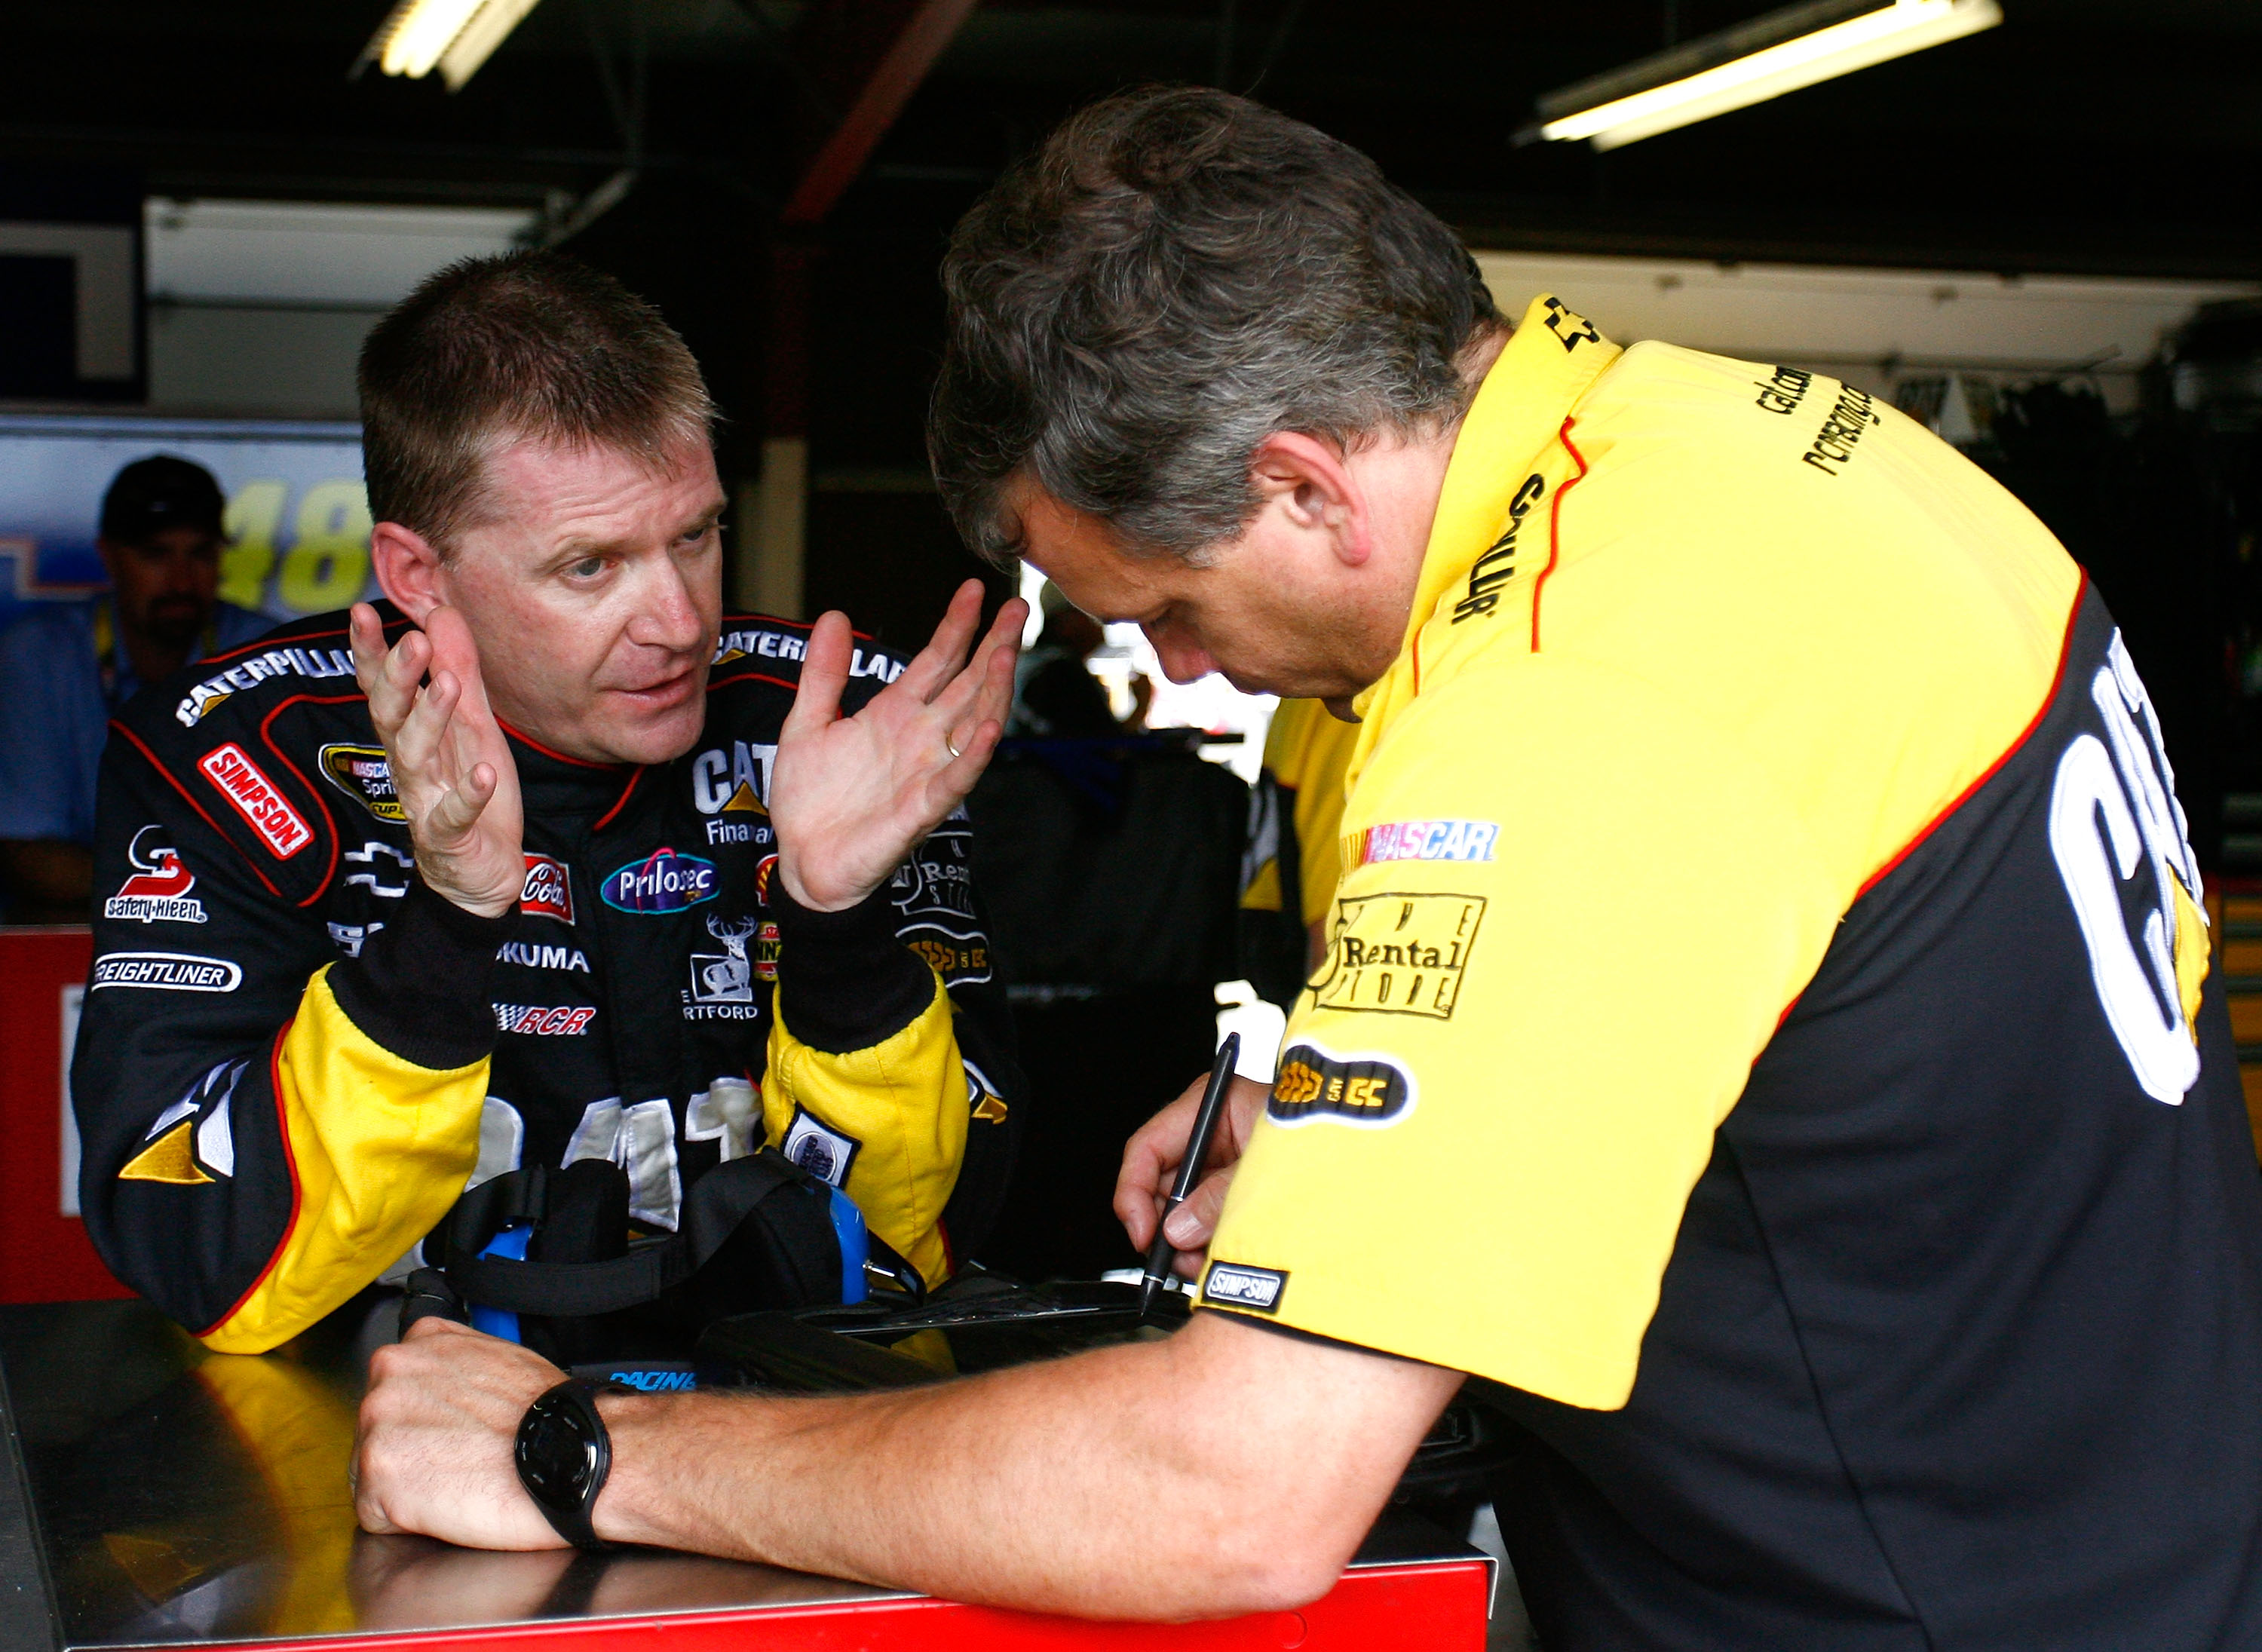 BROOKLYN, MI - JUNE 12:  Jeff Burton (L), driver of the #31 Caterpillar Chevrolet speaks with crew chief Todd Berrier (R) during practice for the NASCAR Sprint Cup Series Heluva Good! Sour Cream Dips 400 at Michigan International Speedway on June 12, 2010